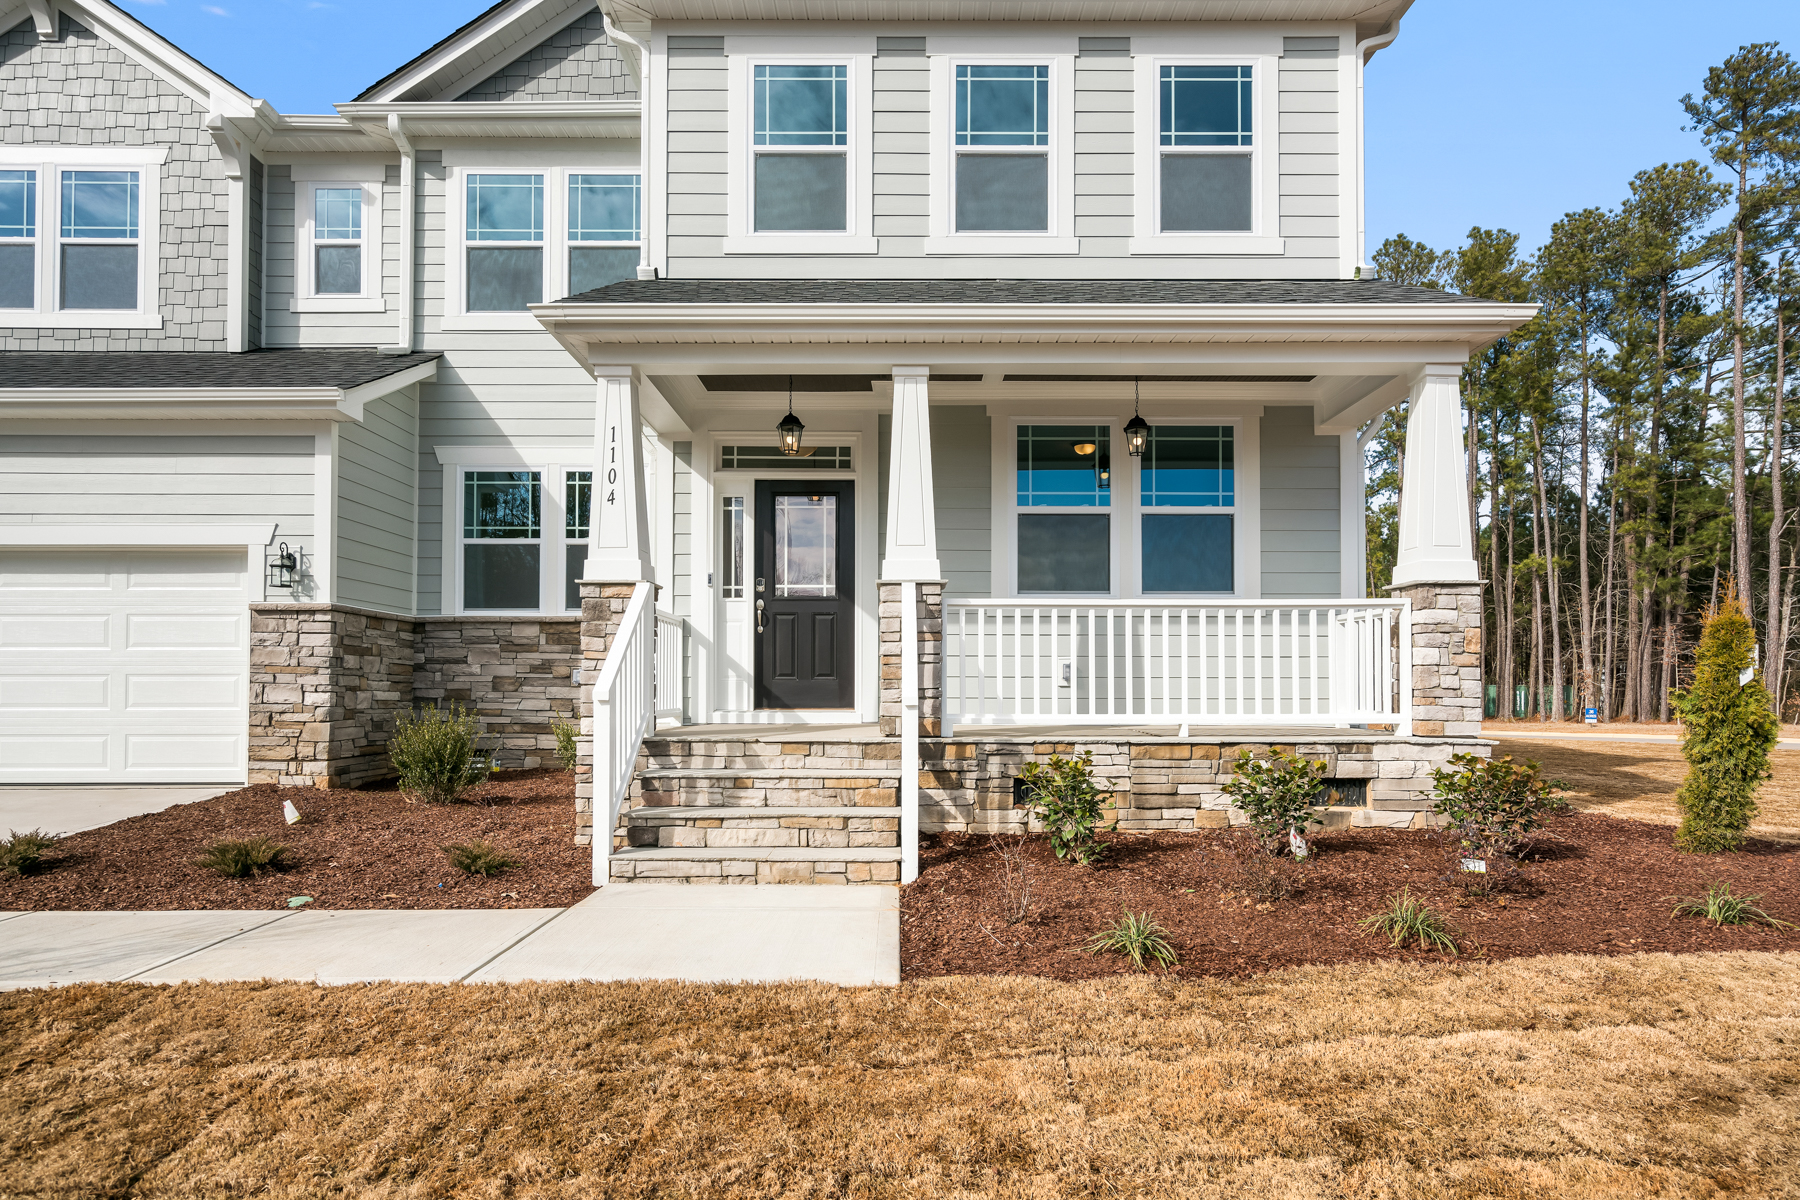 Mitchell Plan Front Porch at Fairview Park in Cary North Carolina by Mattamy Homes